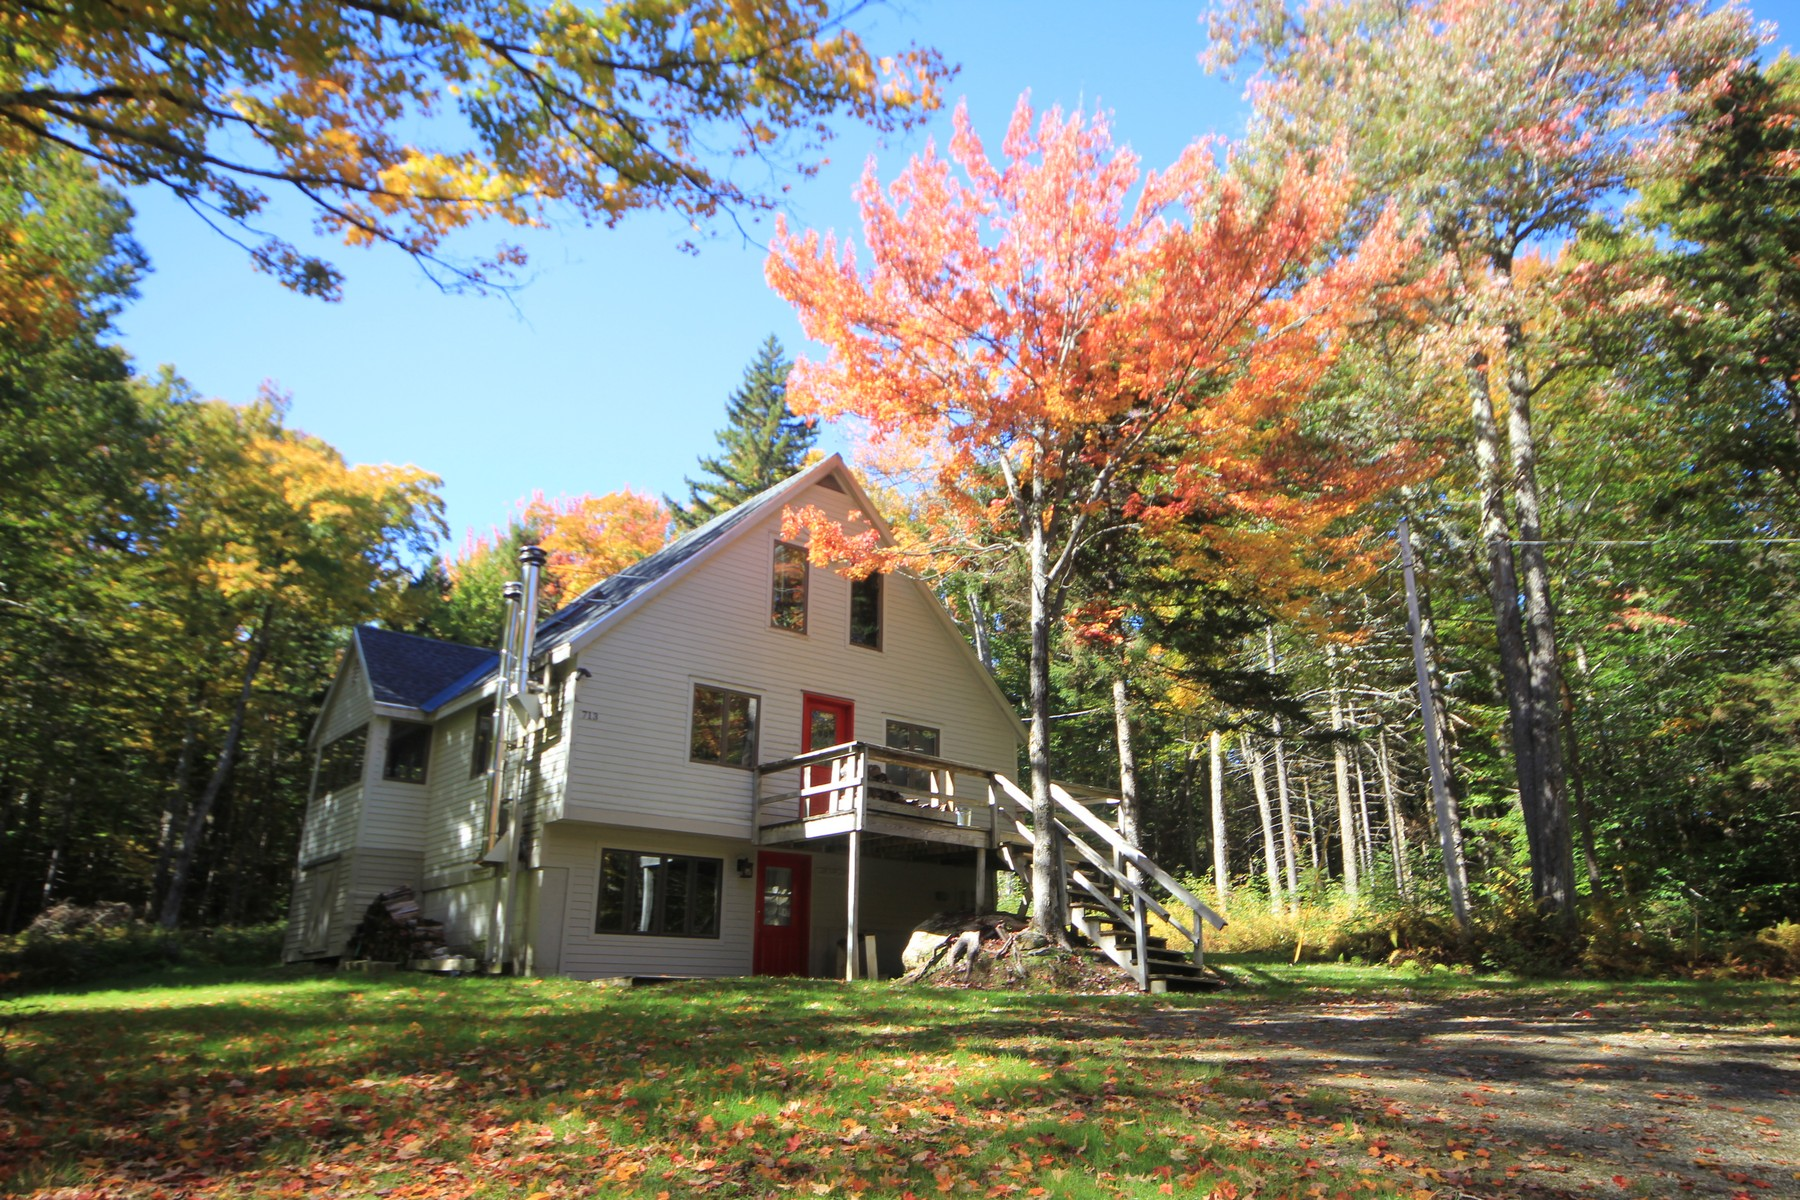 Single Family Homes for Sale at 713 Stratton Arlington Road, Stratton 713 Stratton Arlington Rd Stratton, Vermont 05360 United States